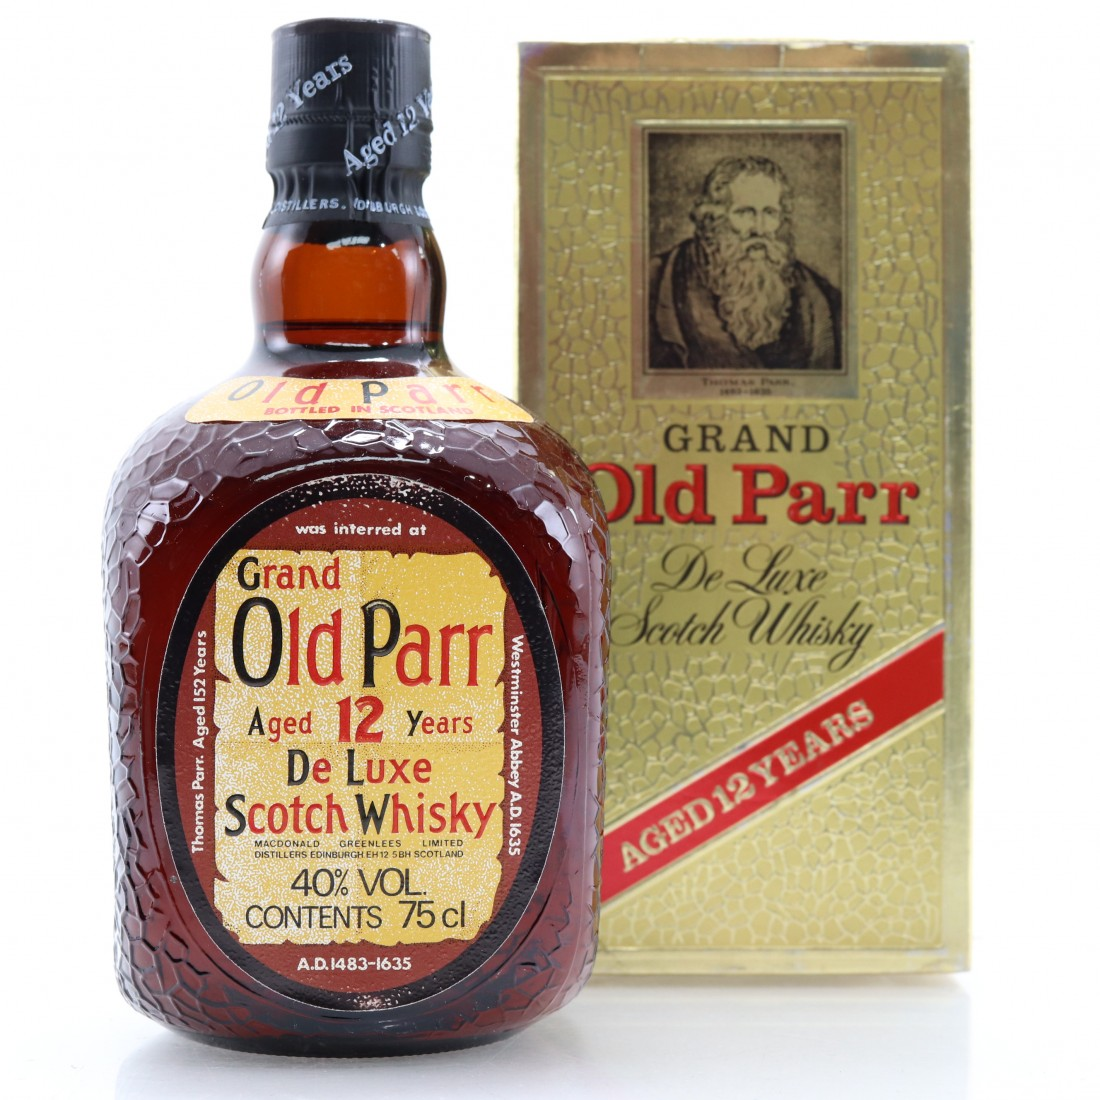 Grand Old Parr 12 Year Old